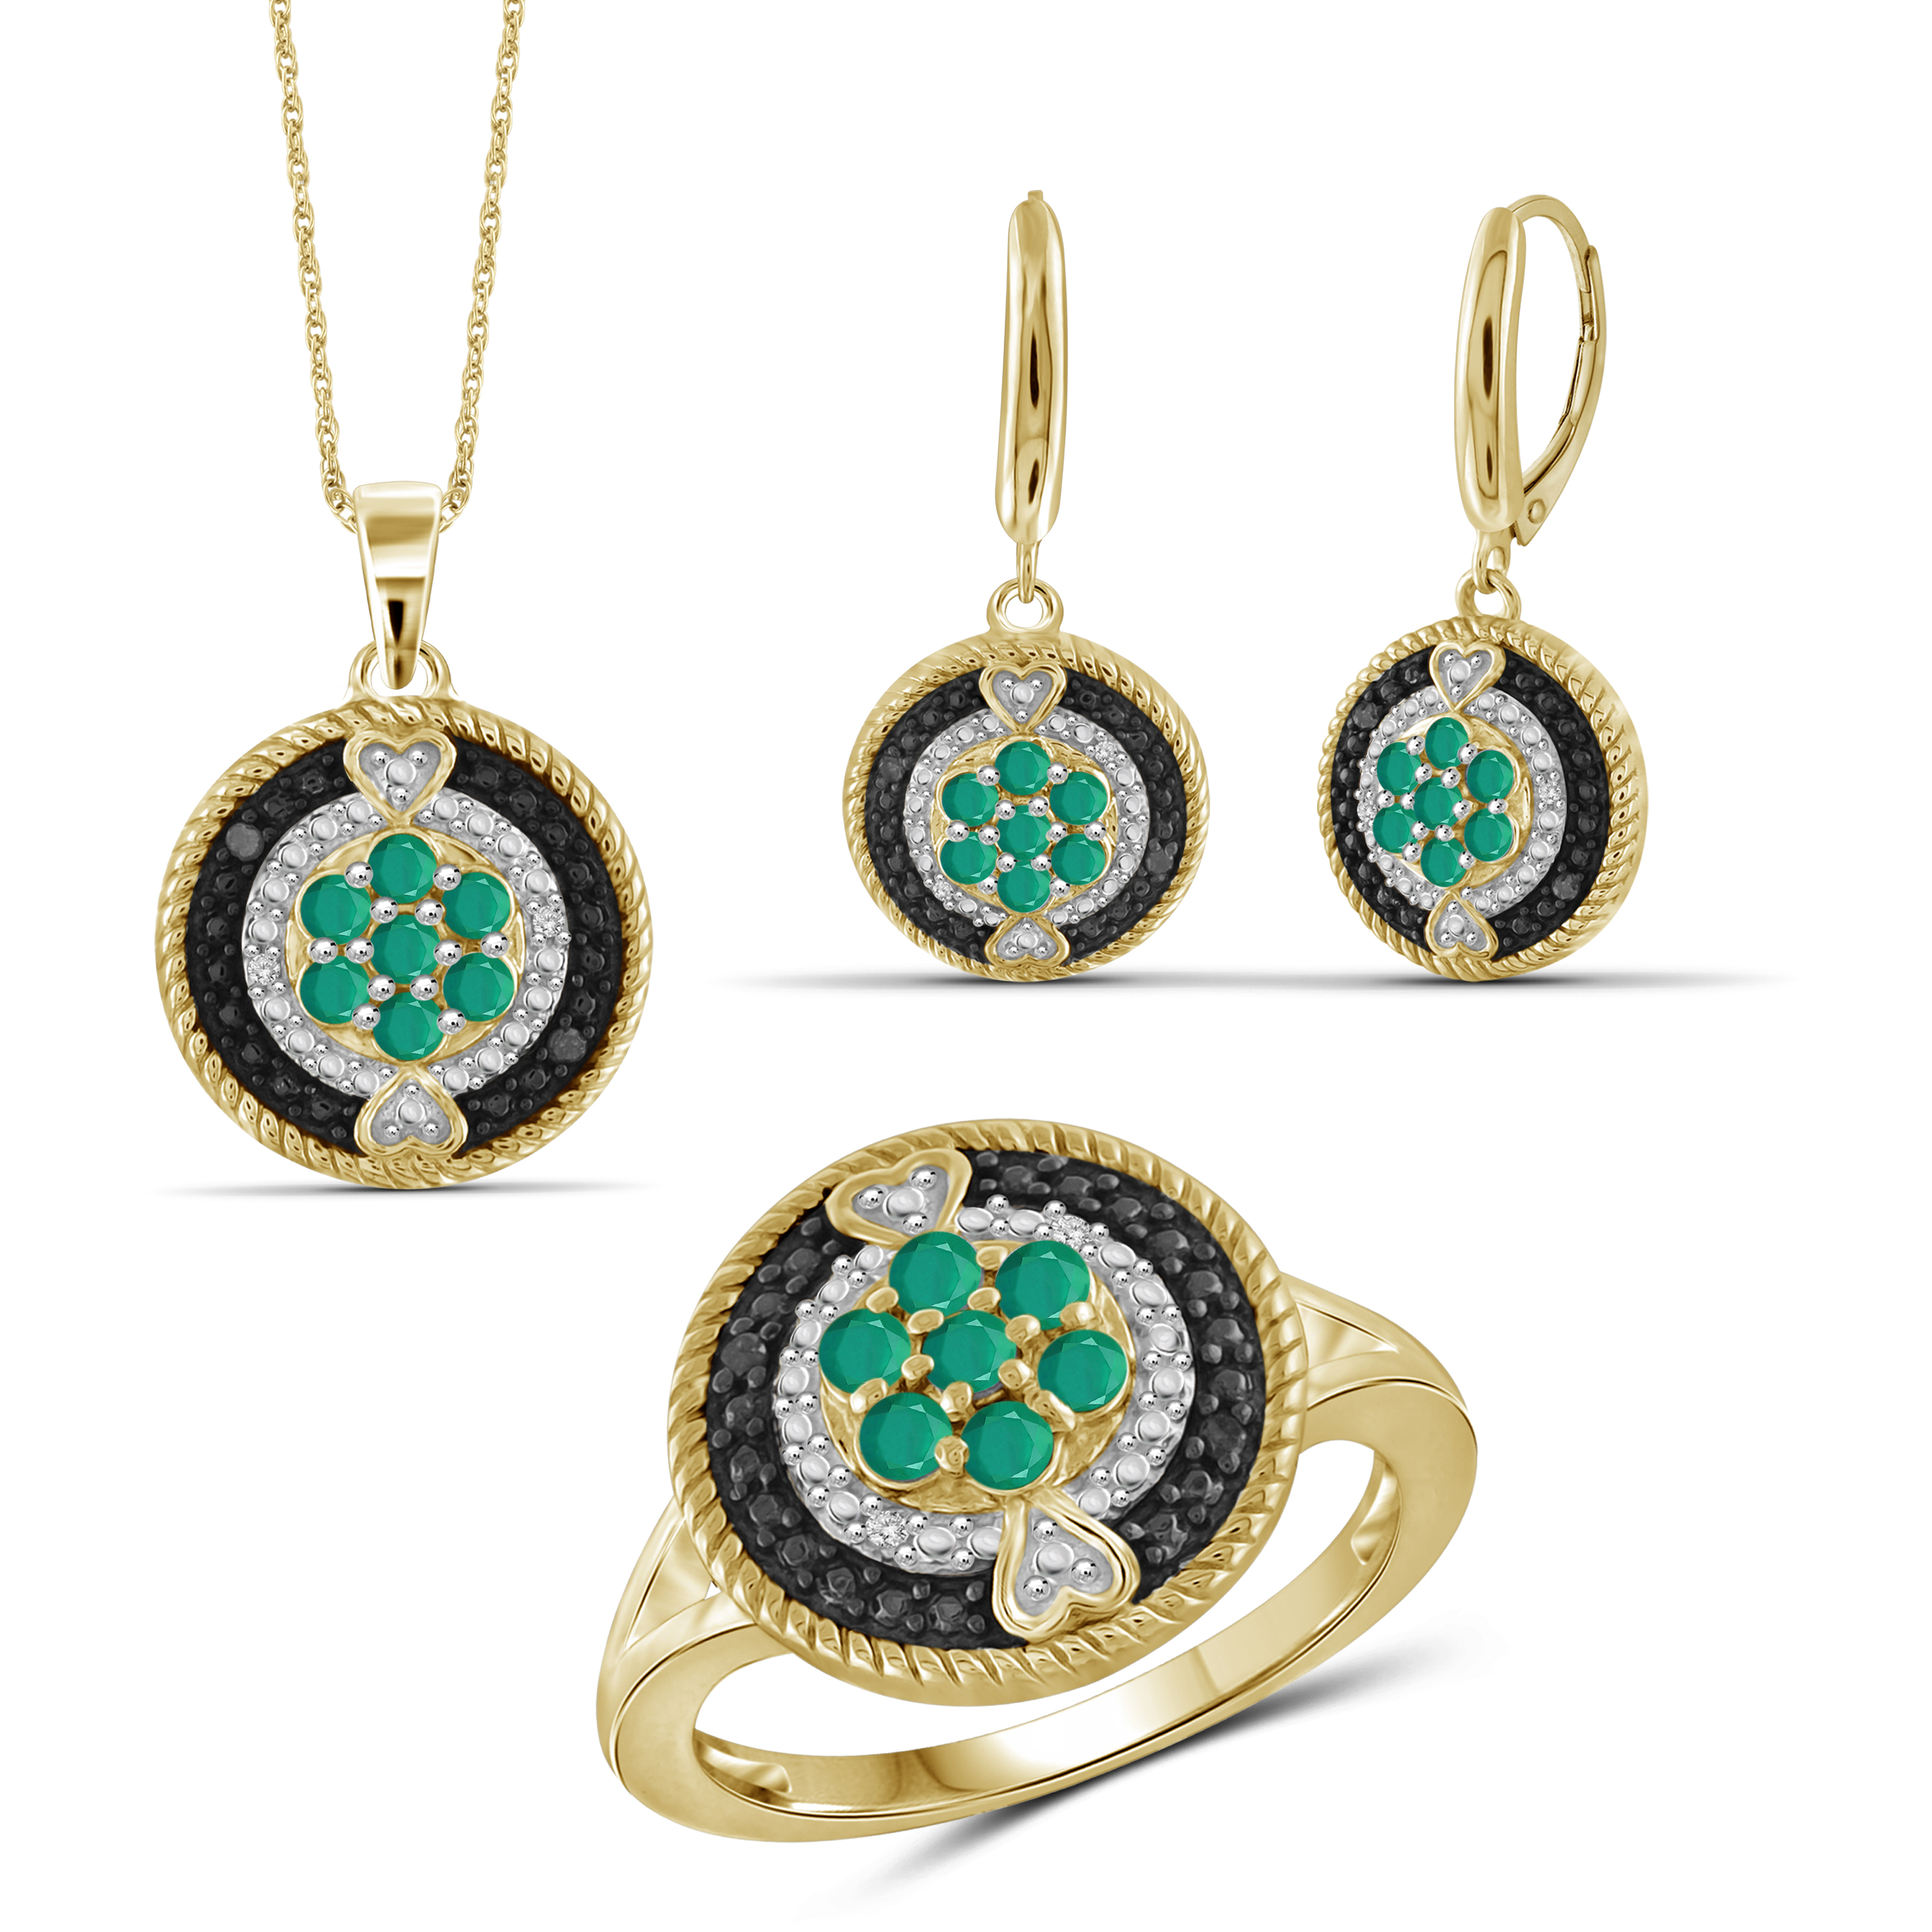 JewelersClub 1 1/2 Carat T.G.W. Emerald And Black & White Diamond Accent 14k Gold Over Silver 3-Piece Jewelry Set